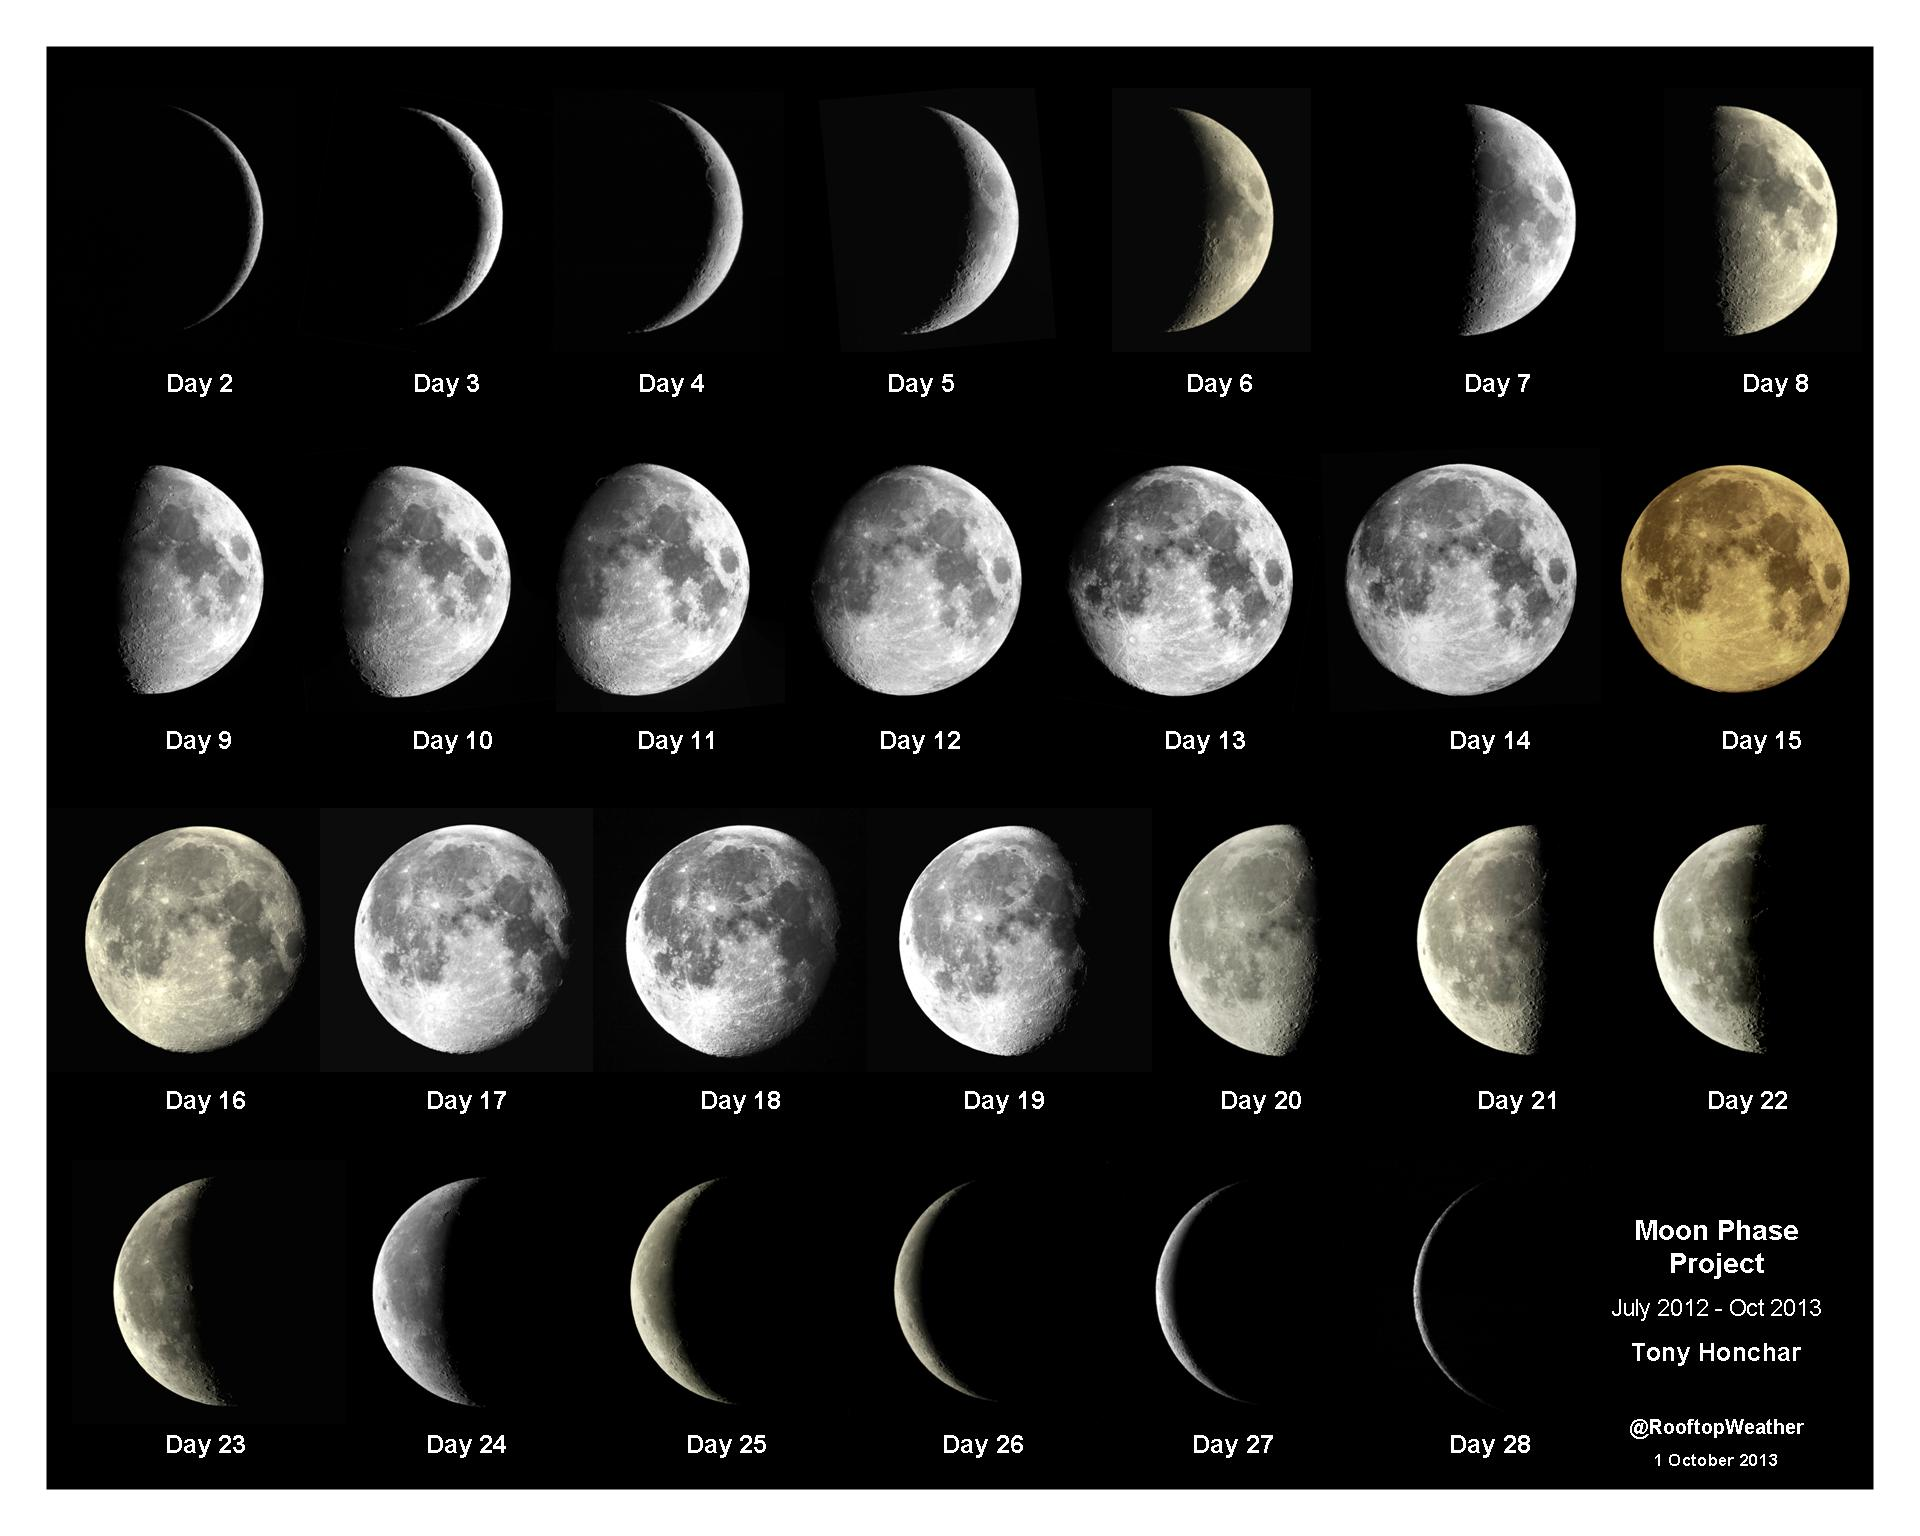 Moon picturesg the specific dates and ages of the moon are listed in the table below gamestrikefo Choice Image